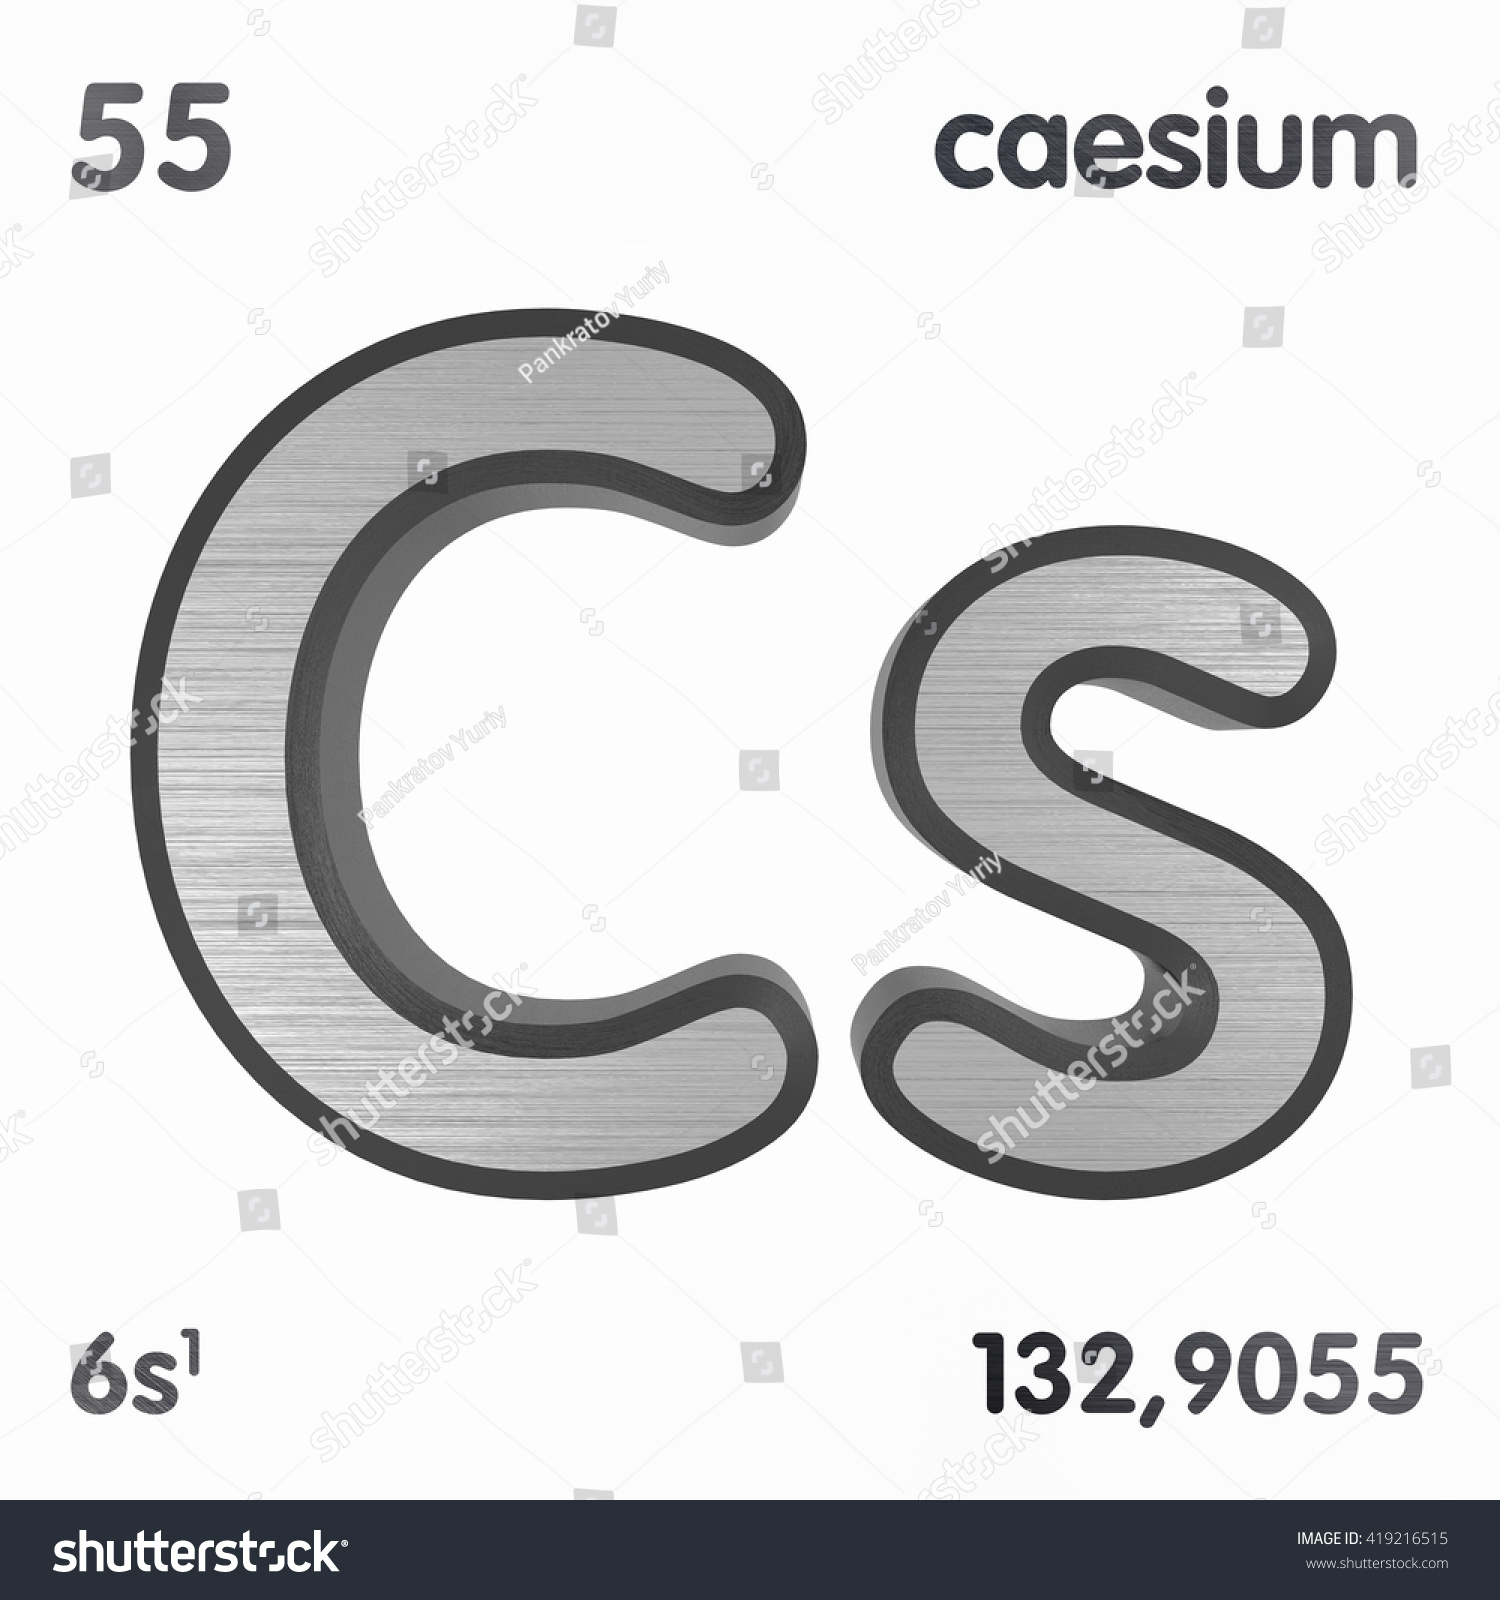 Cesium periodic table choice image periodic table images cesium on the periodic table image collections periodic table images periodic table elements cesium 3d title gamestrikefo Images